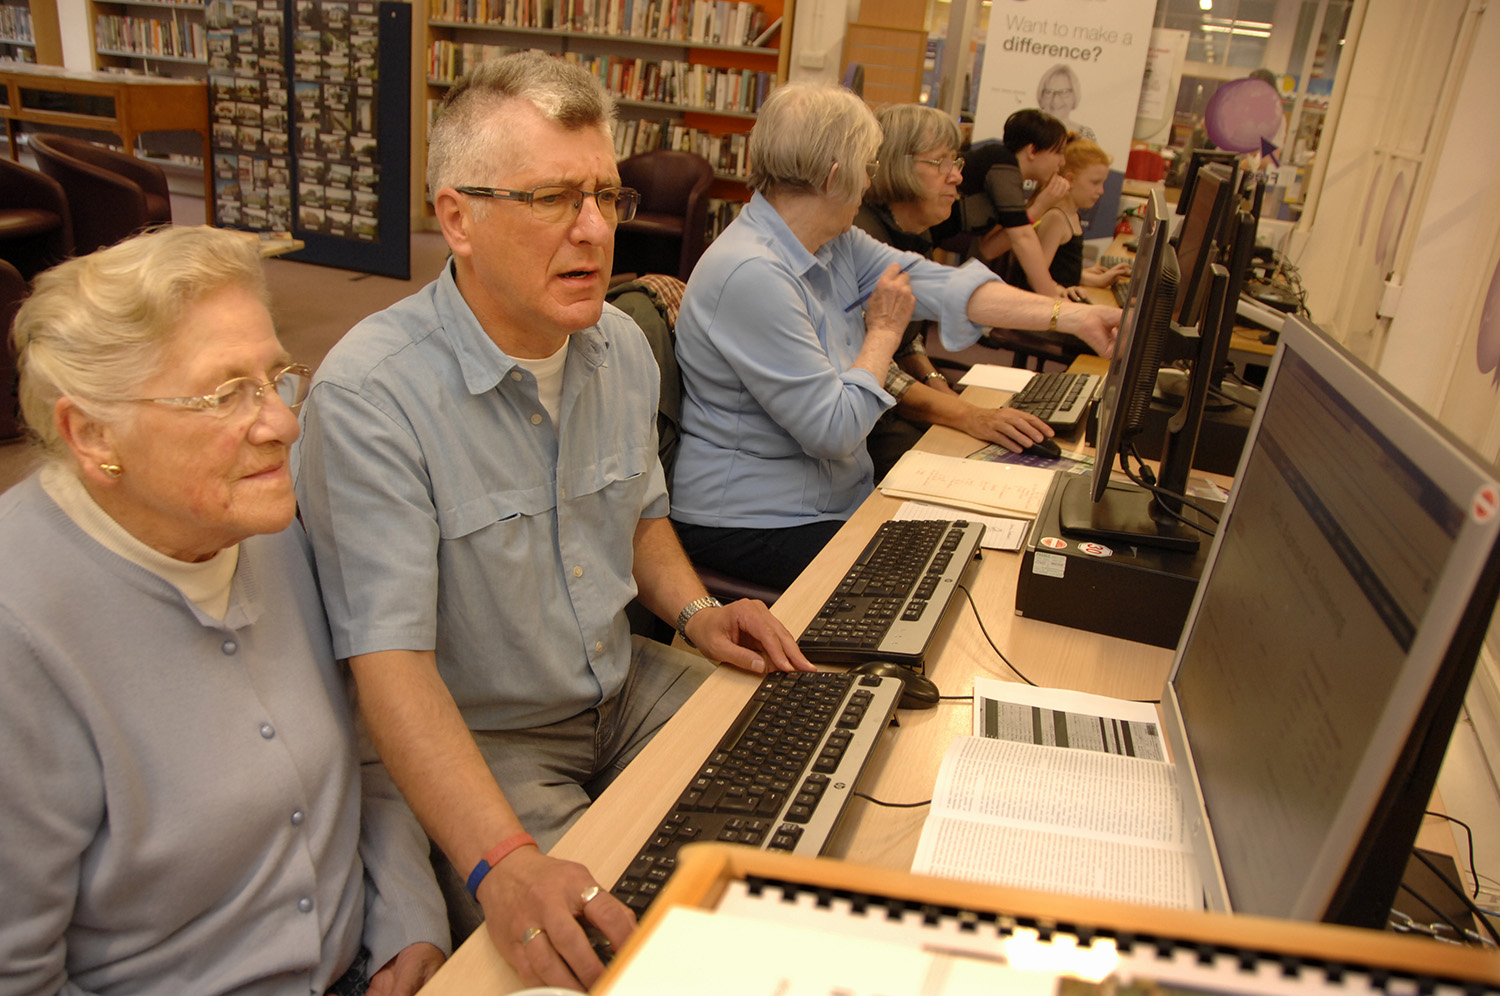 Volunteer Richard Crocker helps Valerie Barron research her family tree